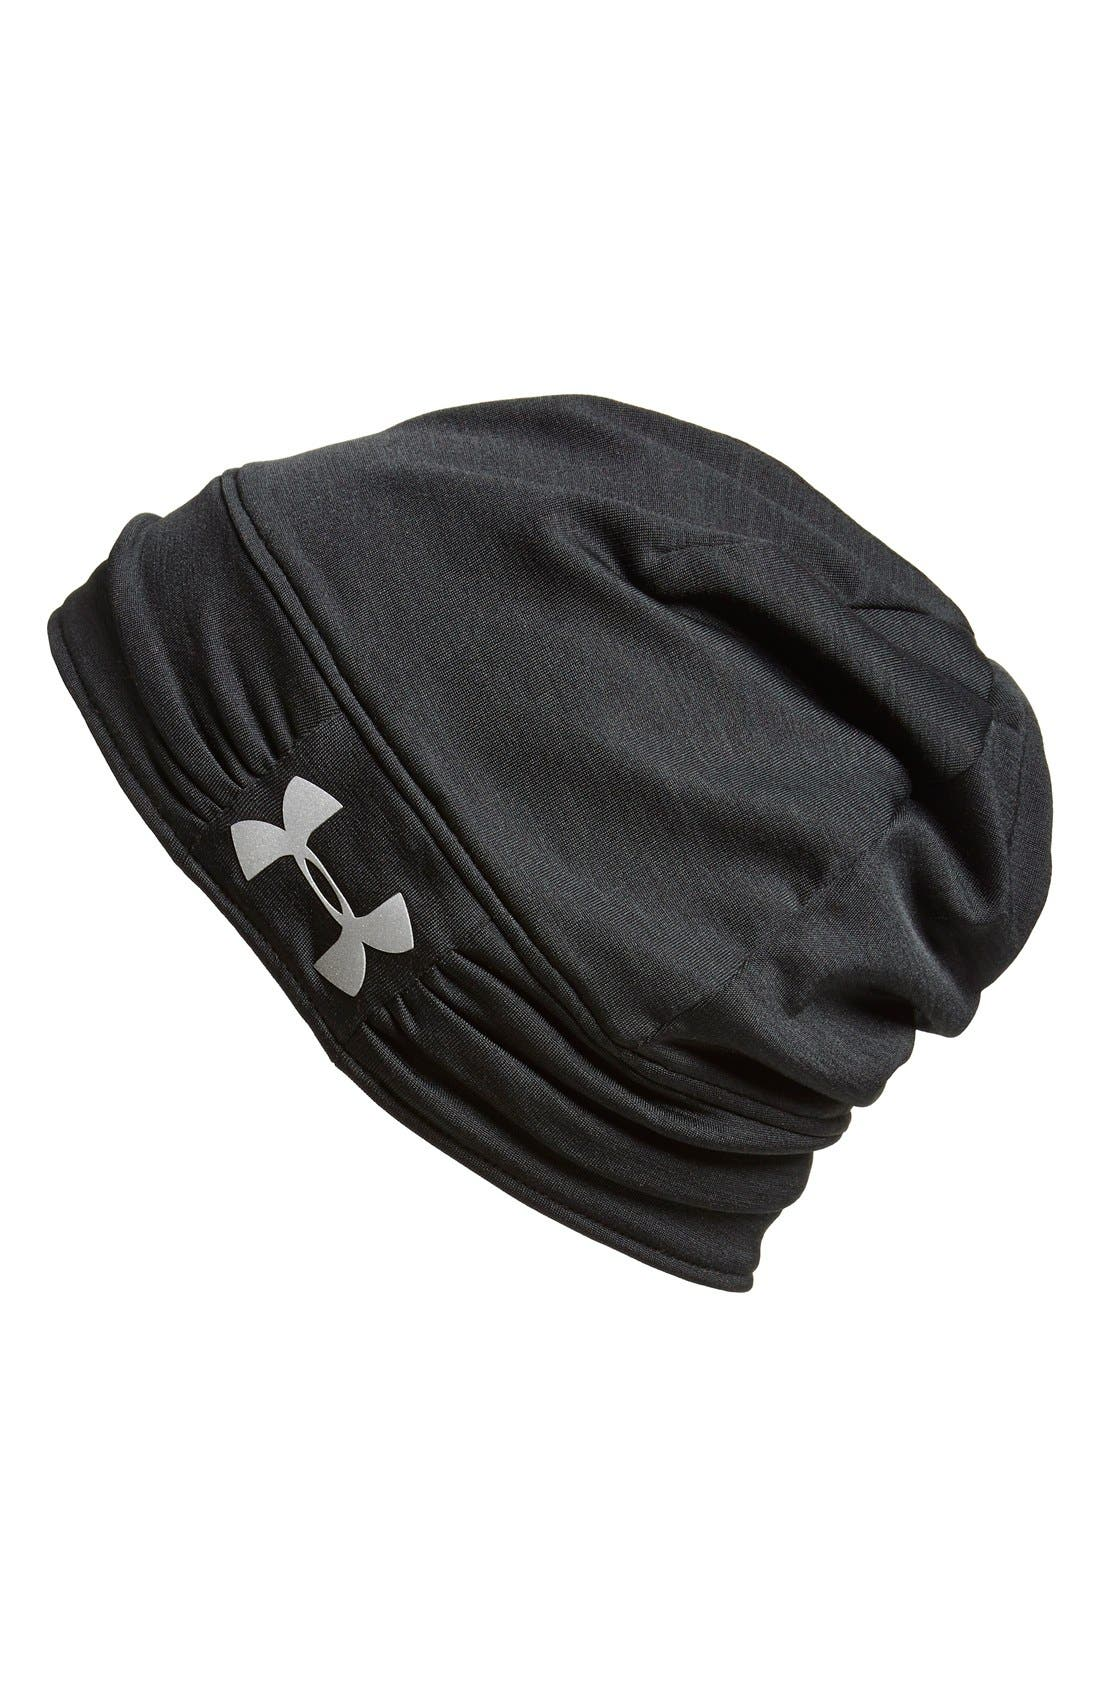 Alternate Image 1 Selected - Under Amour 'CGI' Infrared ColdGear® Beanie